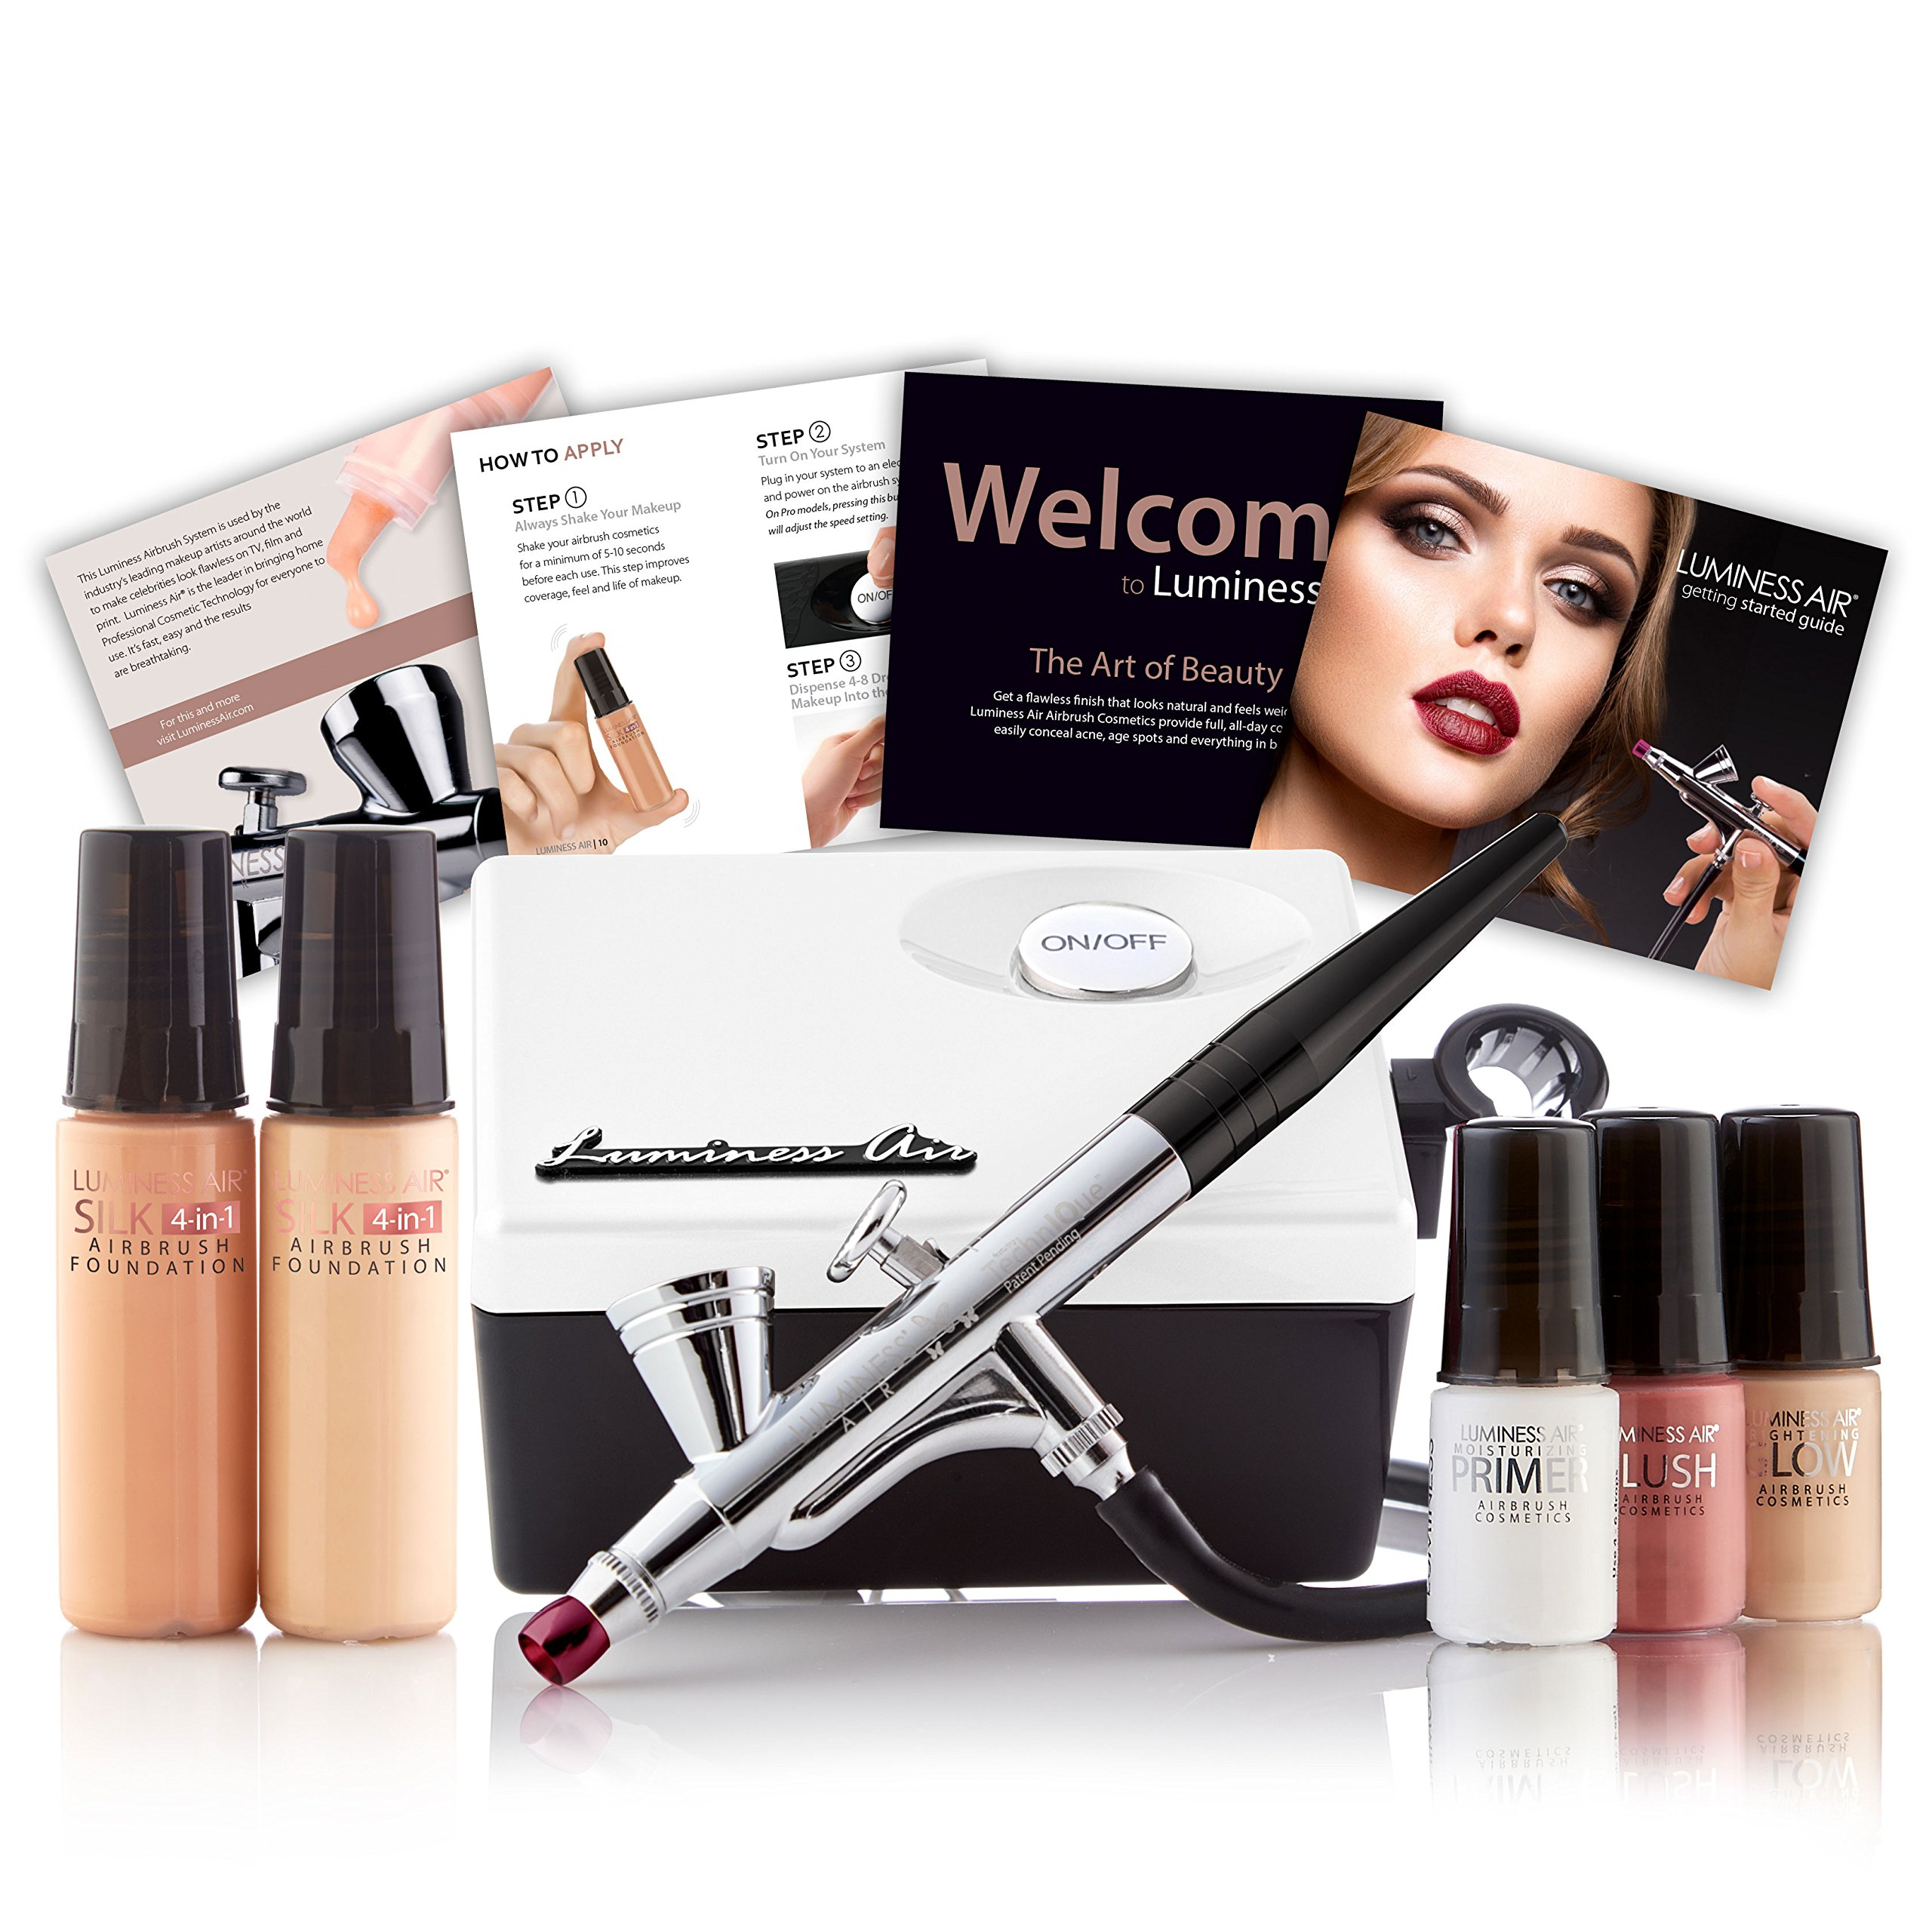 Luminess Air White & Black Legend Airbrush System with 5-Piece Silk 4-IN-1 Deluxe Airbrush Foundation & Cosmetic Starter Kit, Fair